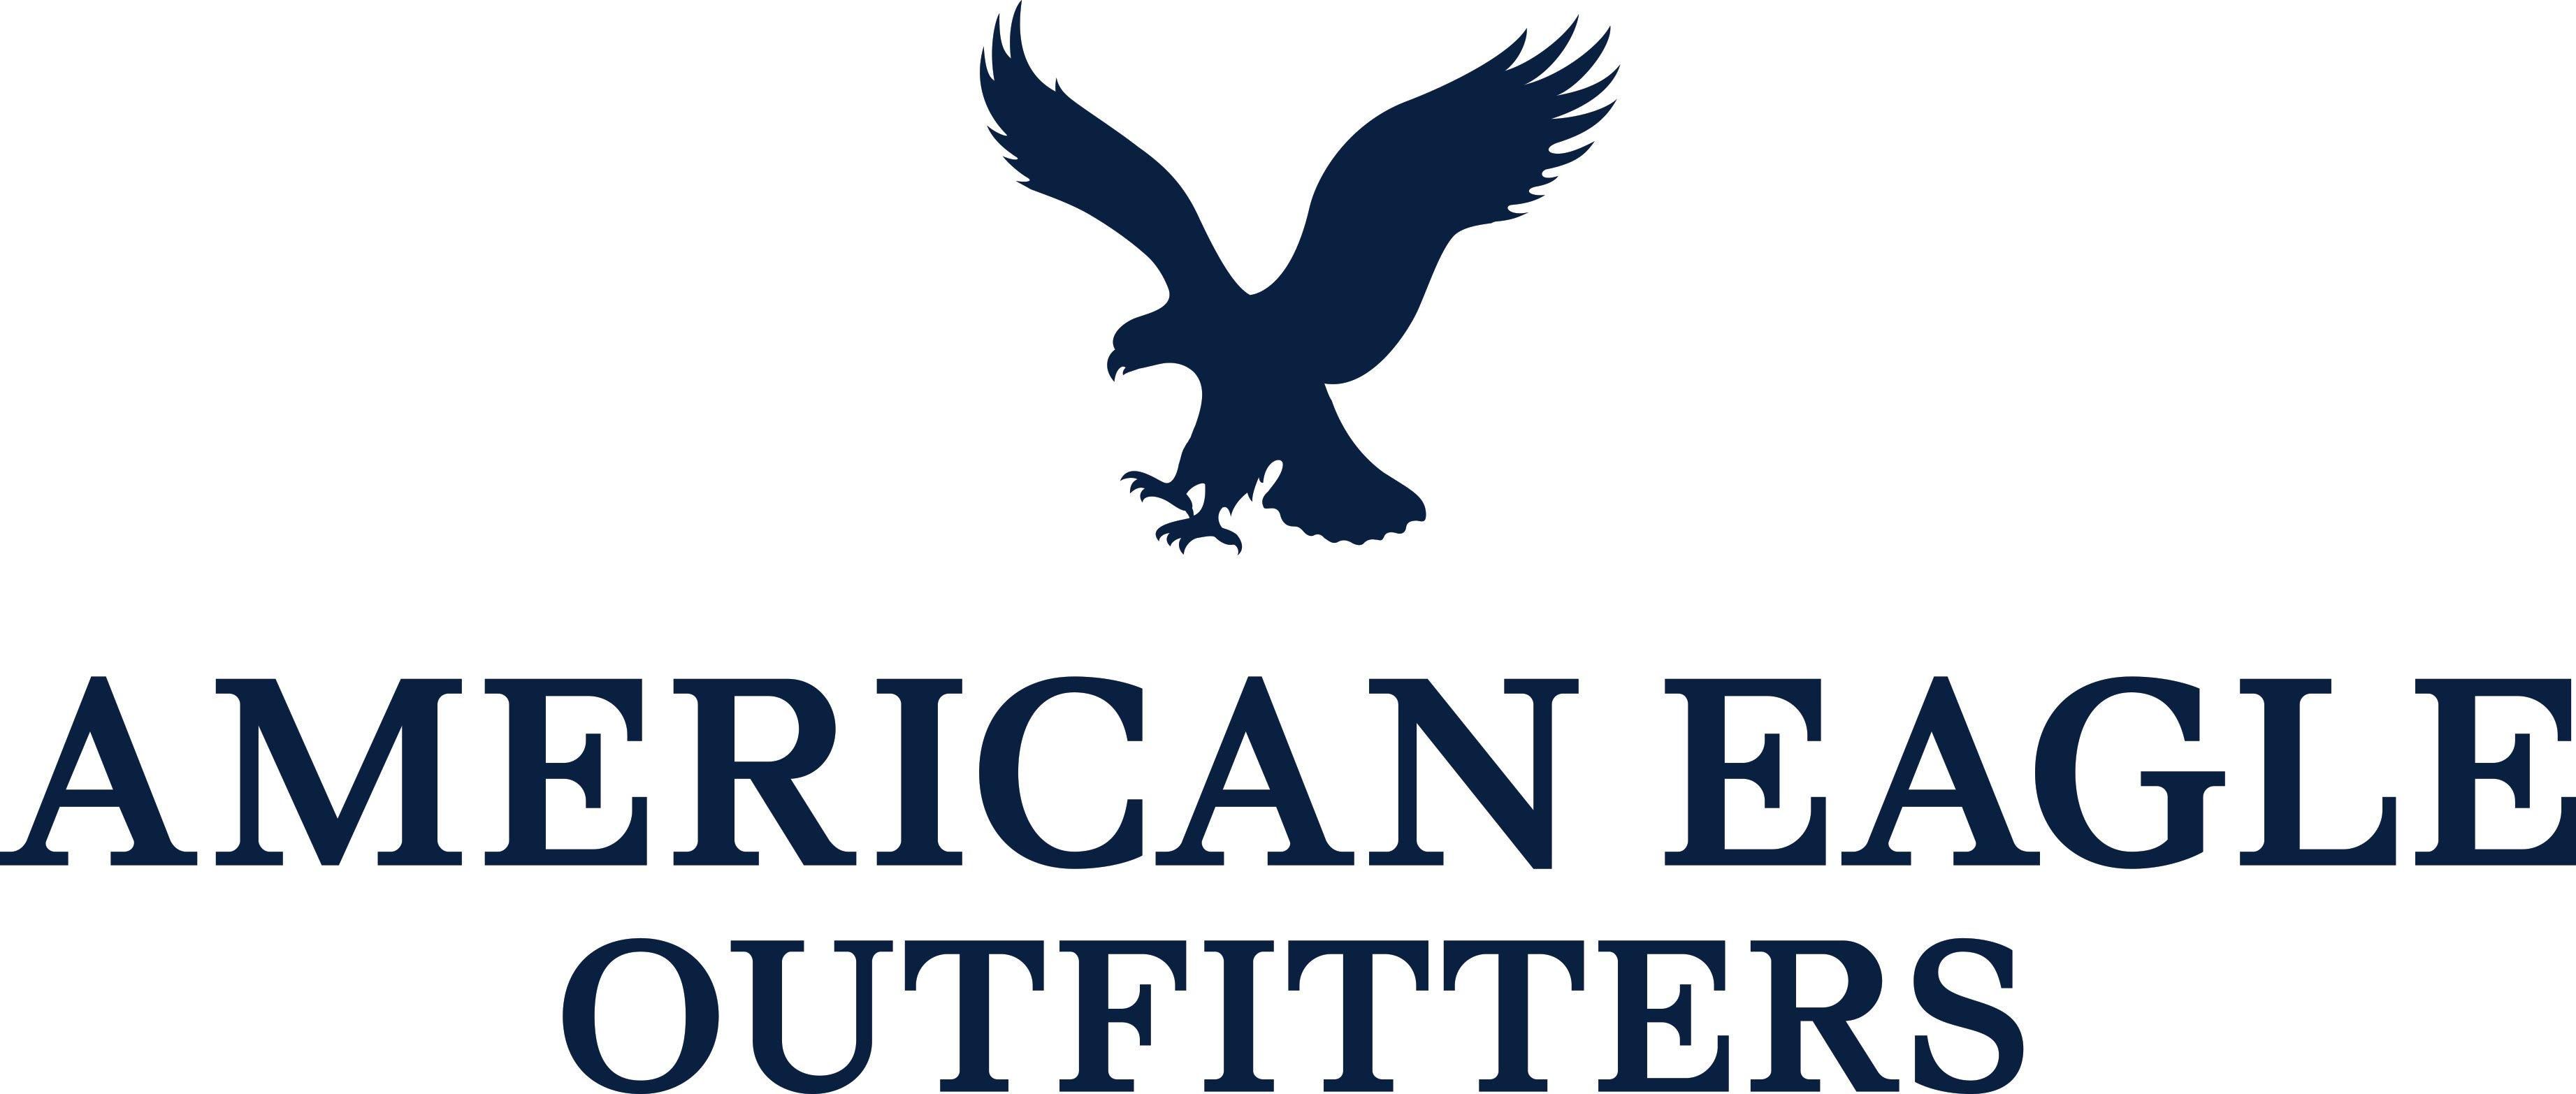 american eagle outfitters near 5 year highs some thoughts rh seekingalpha com